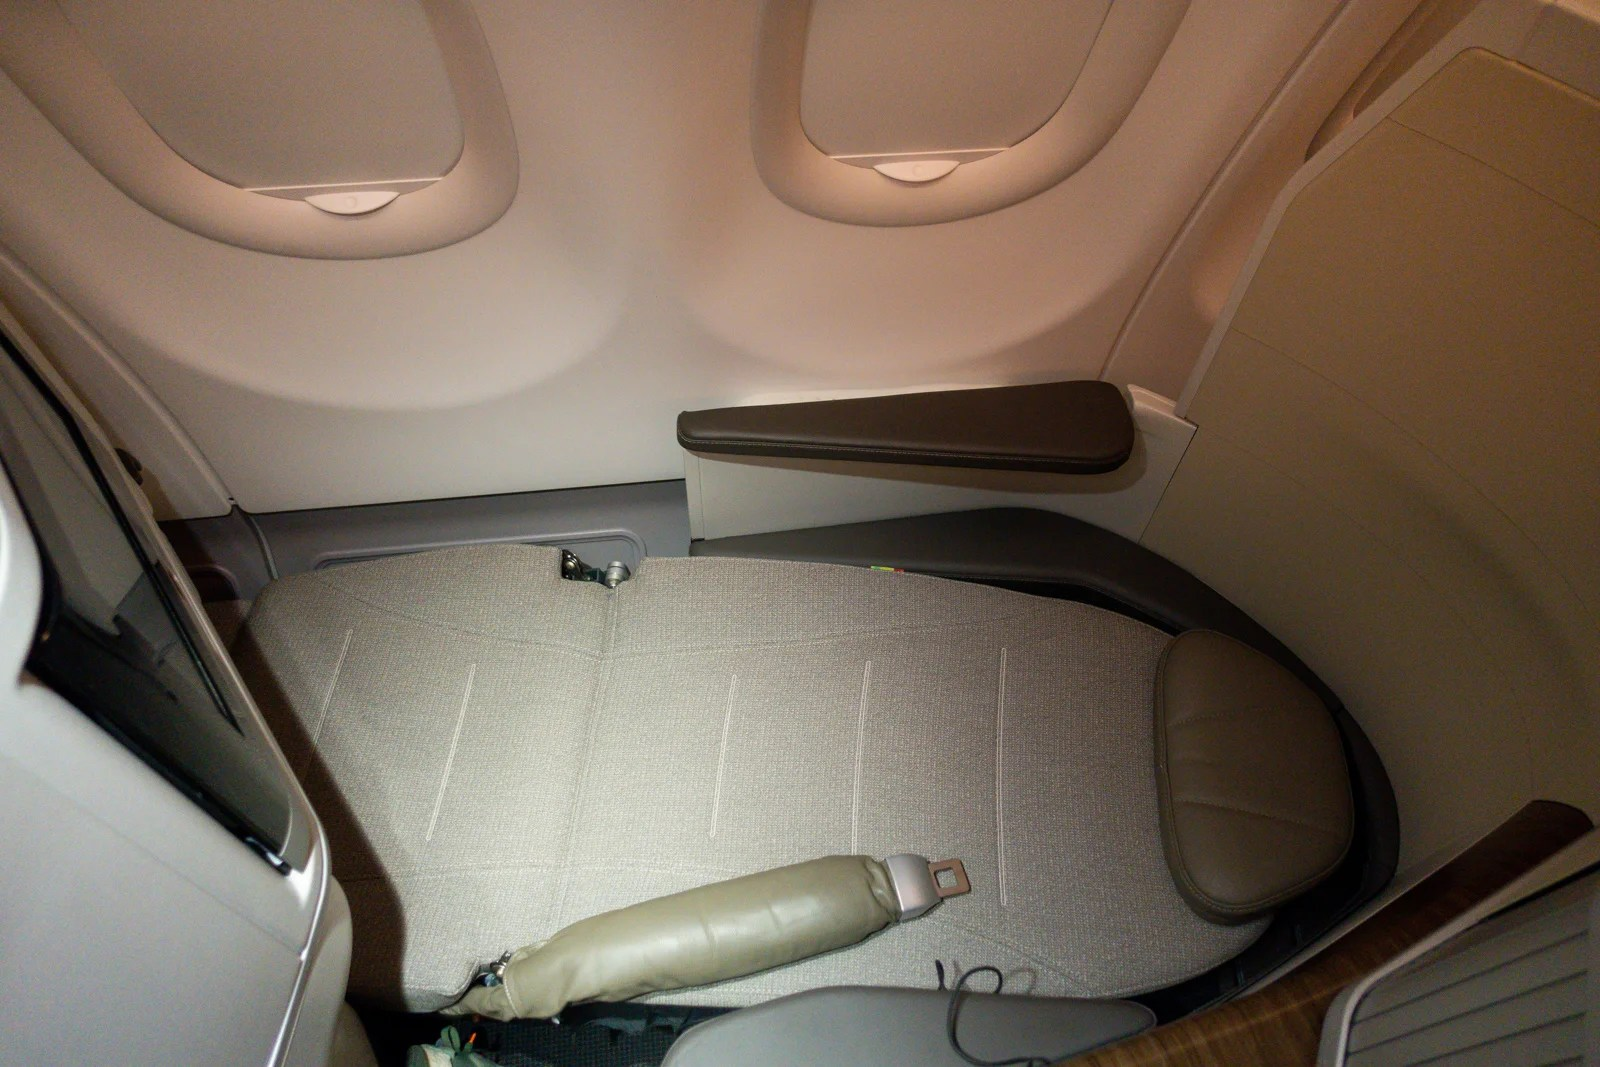 Collectables In-flight Gifts/ Amenity Kits Tap Airlines Aviation Flight Traveling Amenity Kit On A Tissue Bag # Empty Bag